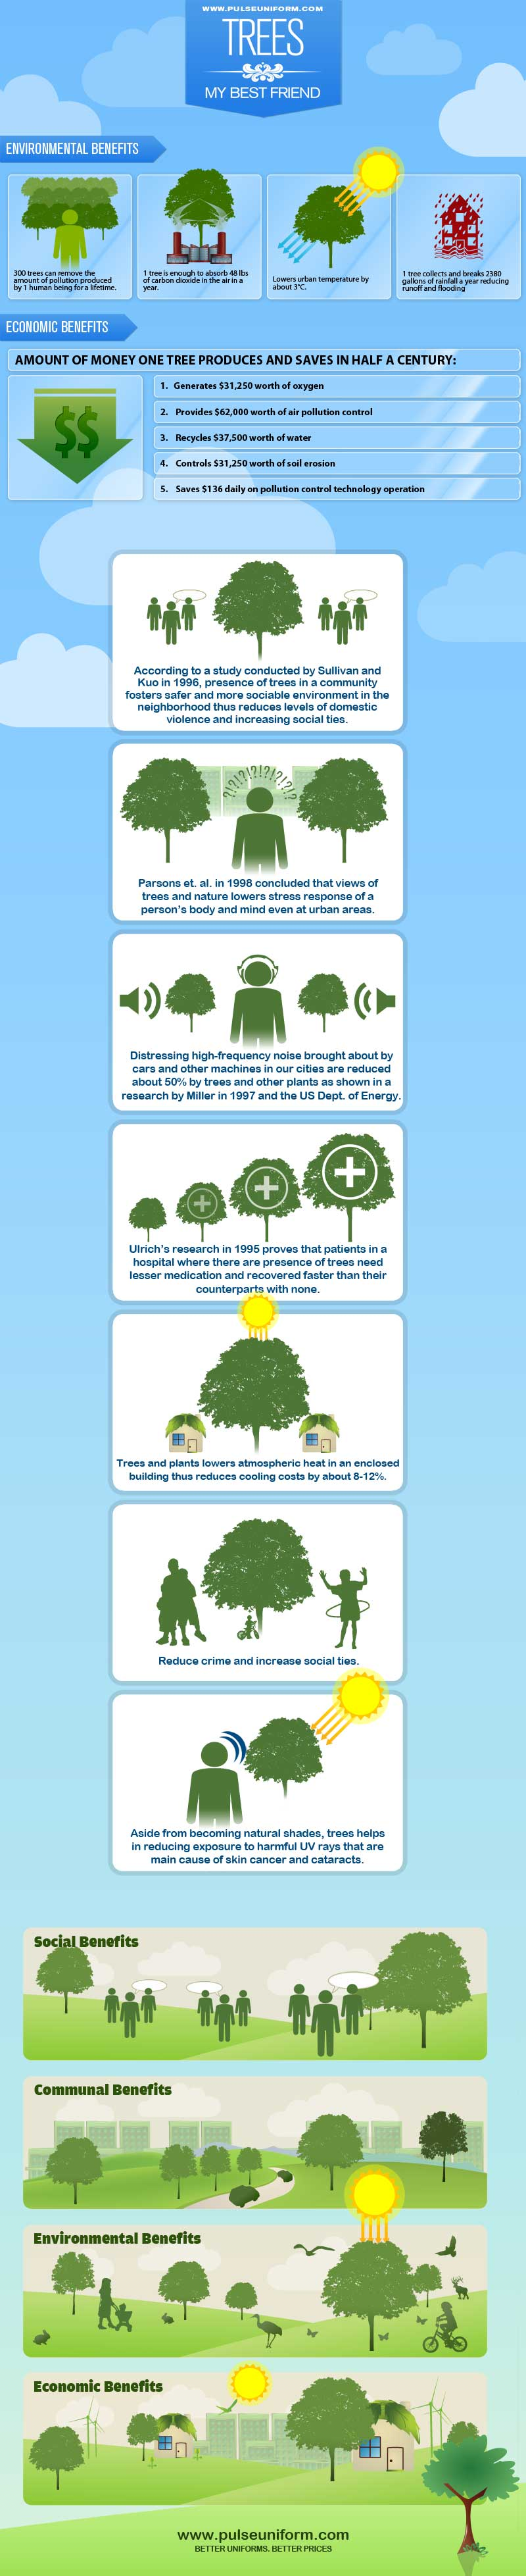 trees are very important in our planet this infographic shows the trees the importance of trees to life on earth infographic